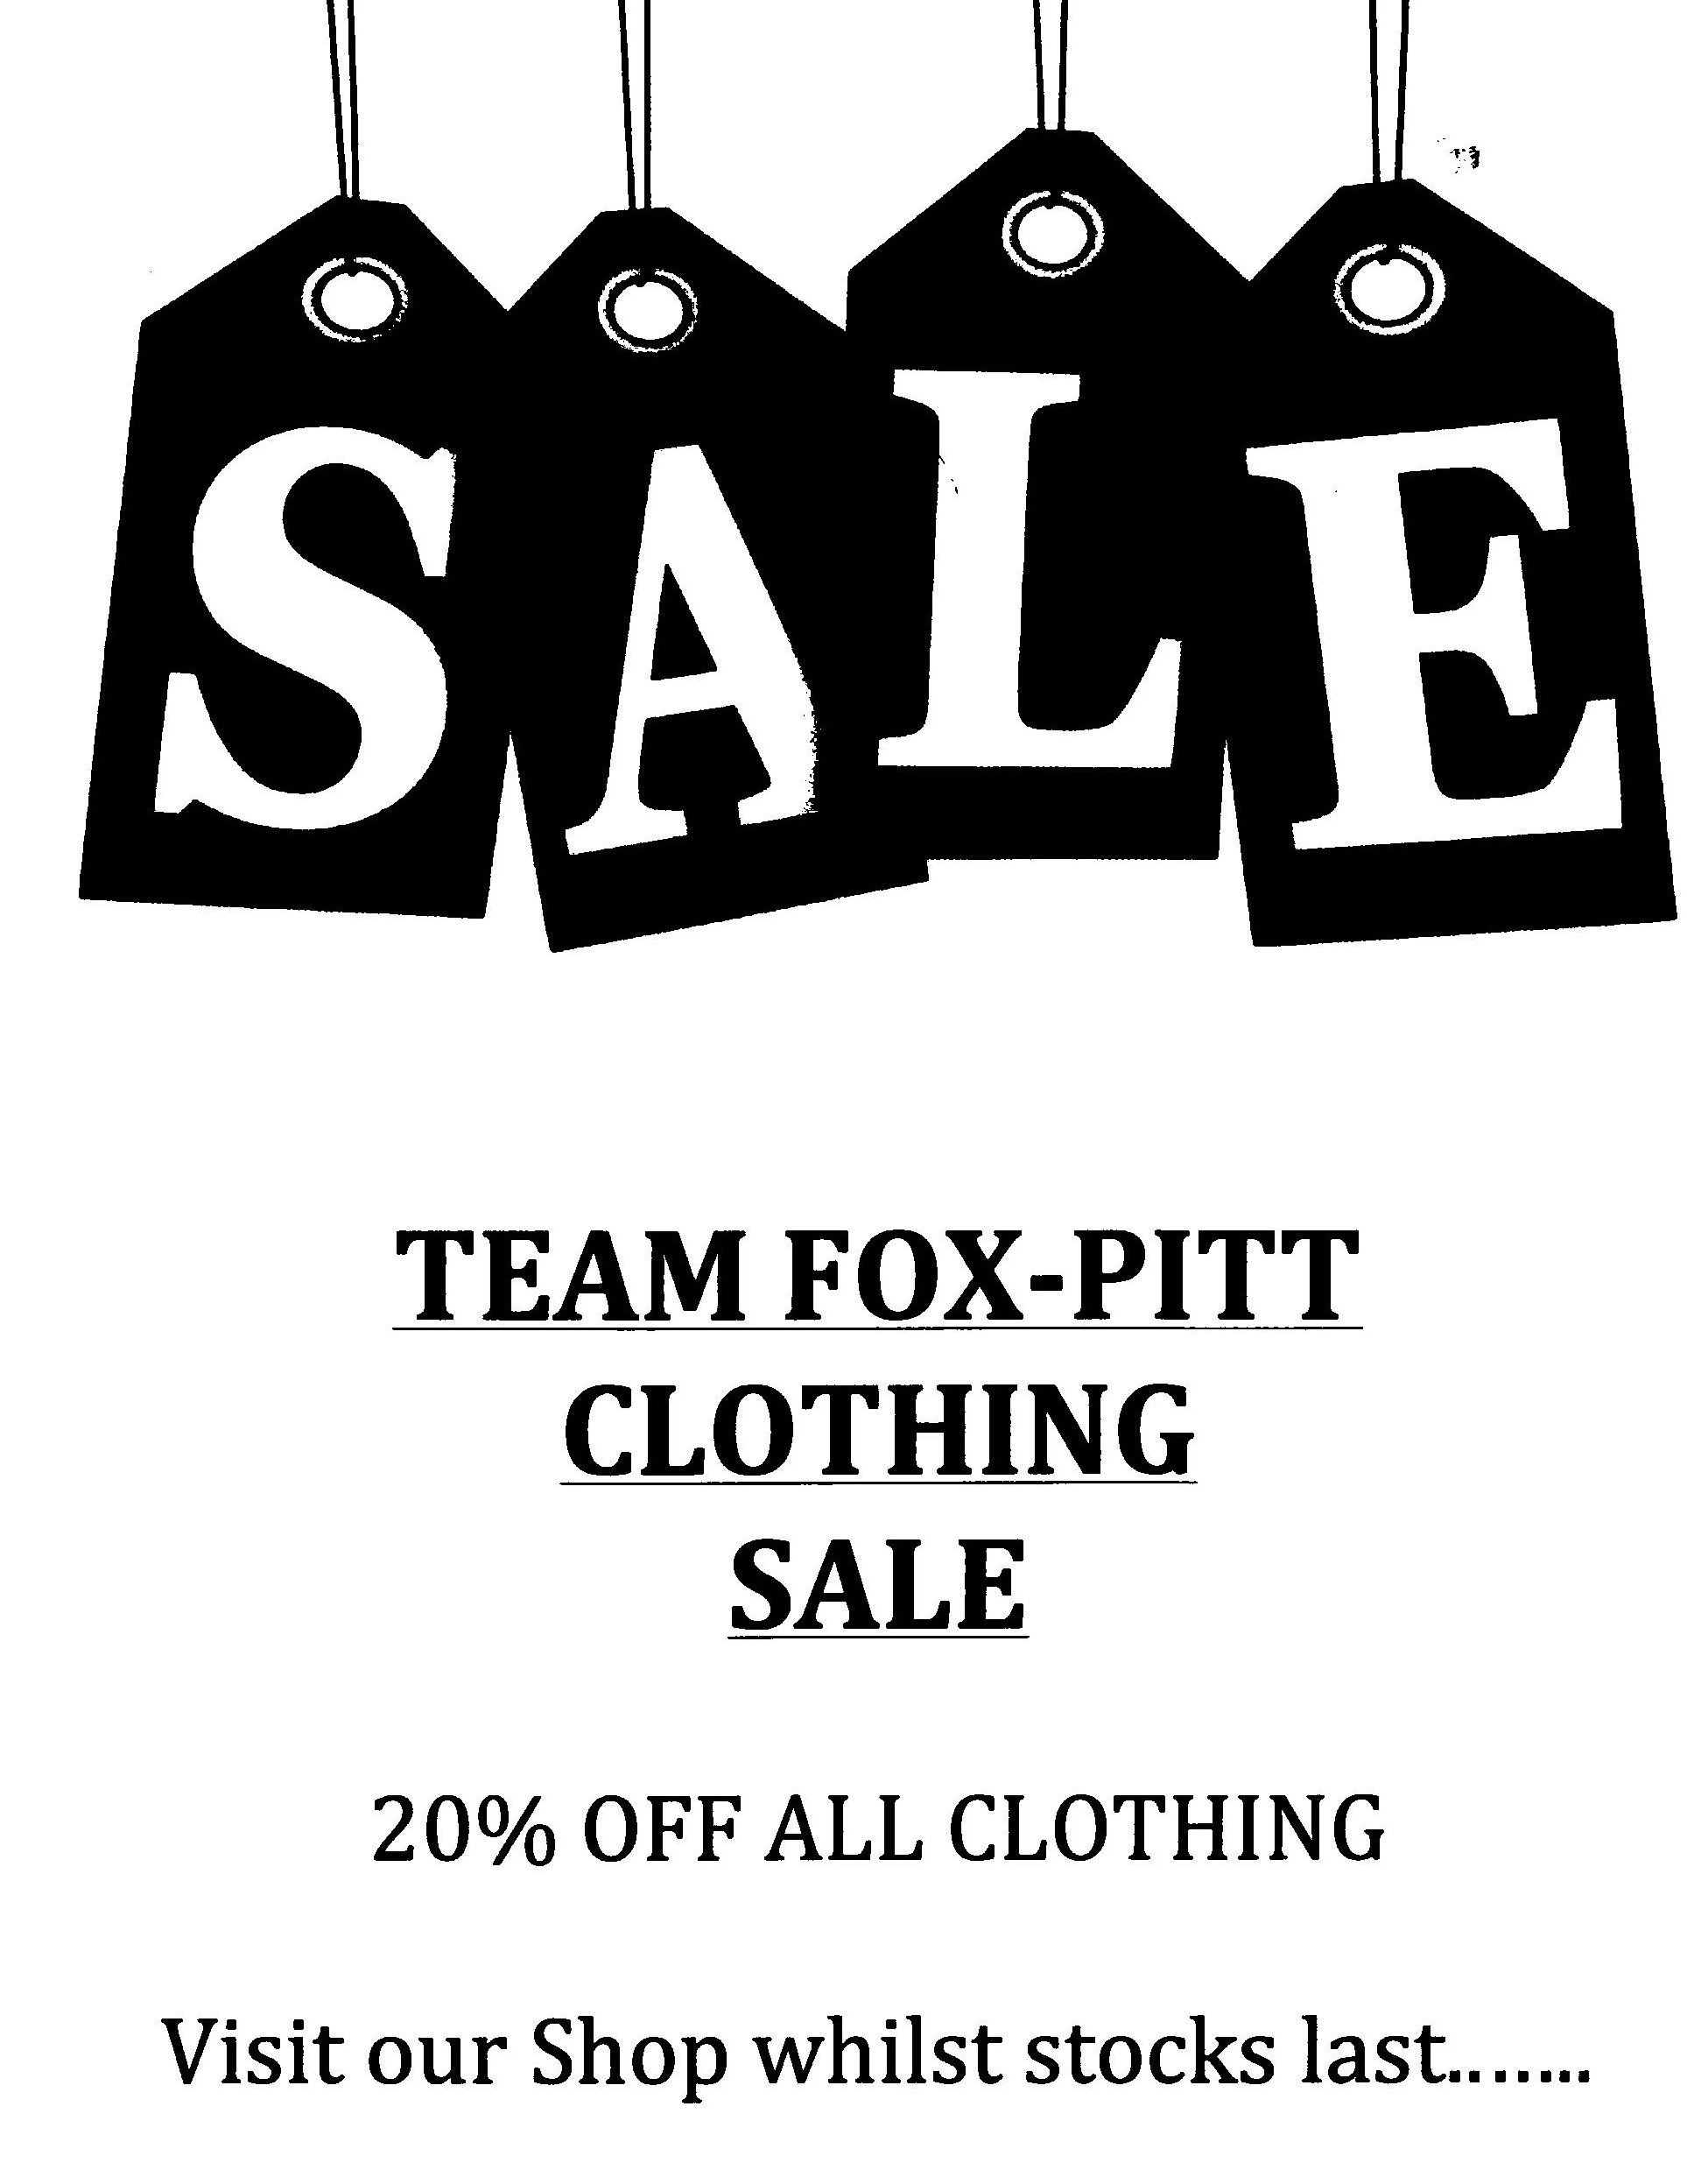 Team Fox-Pitt Clothing Sale